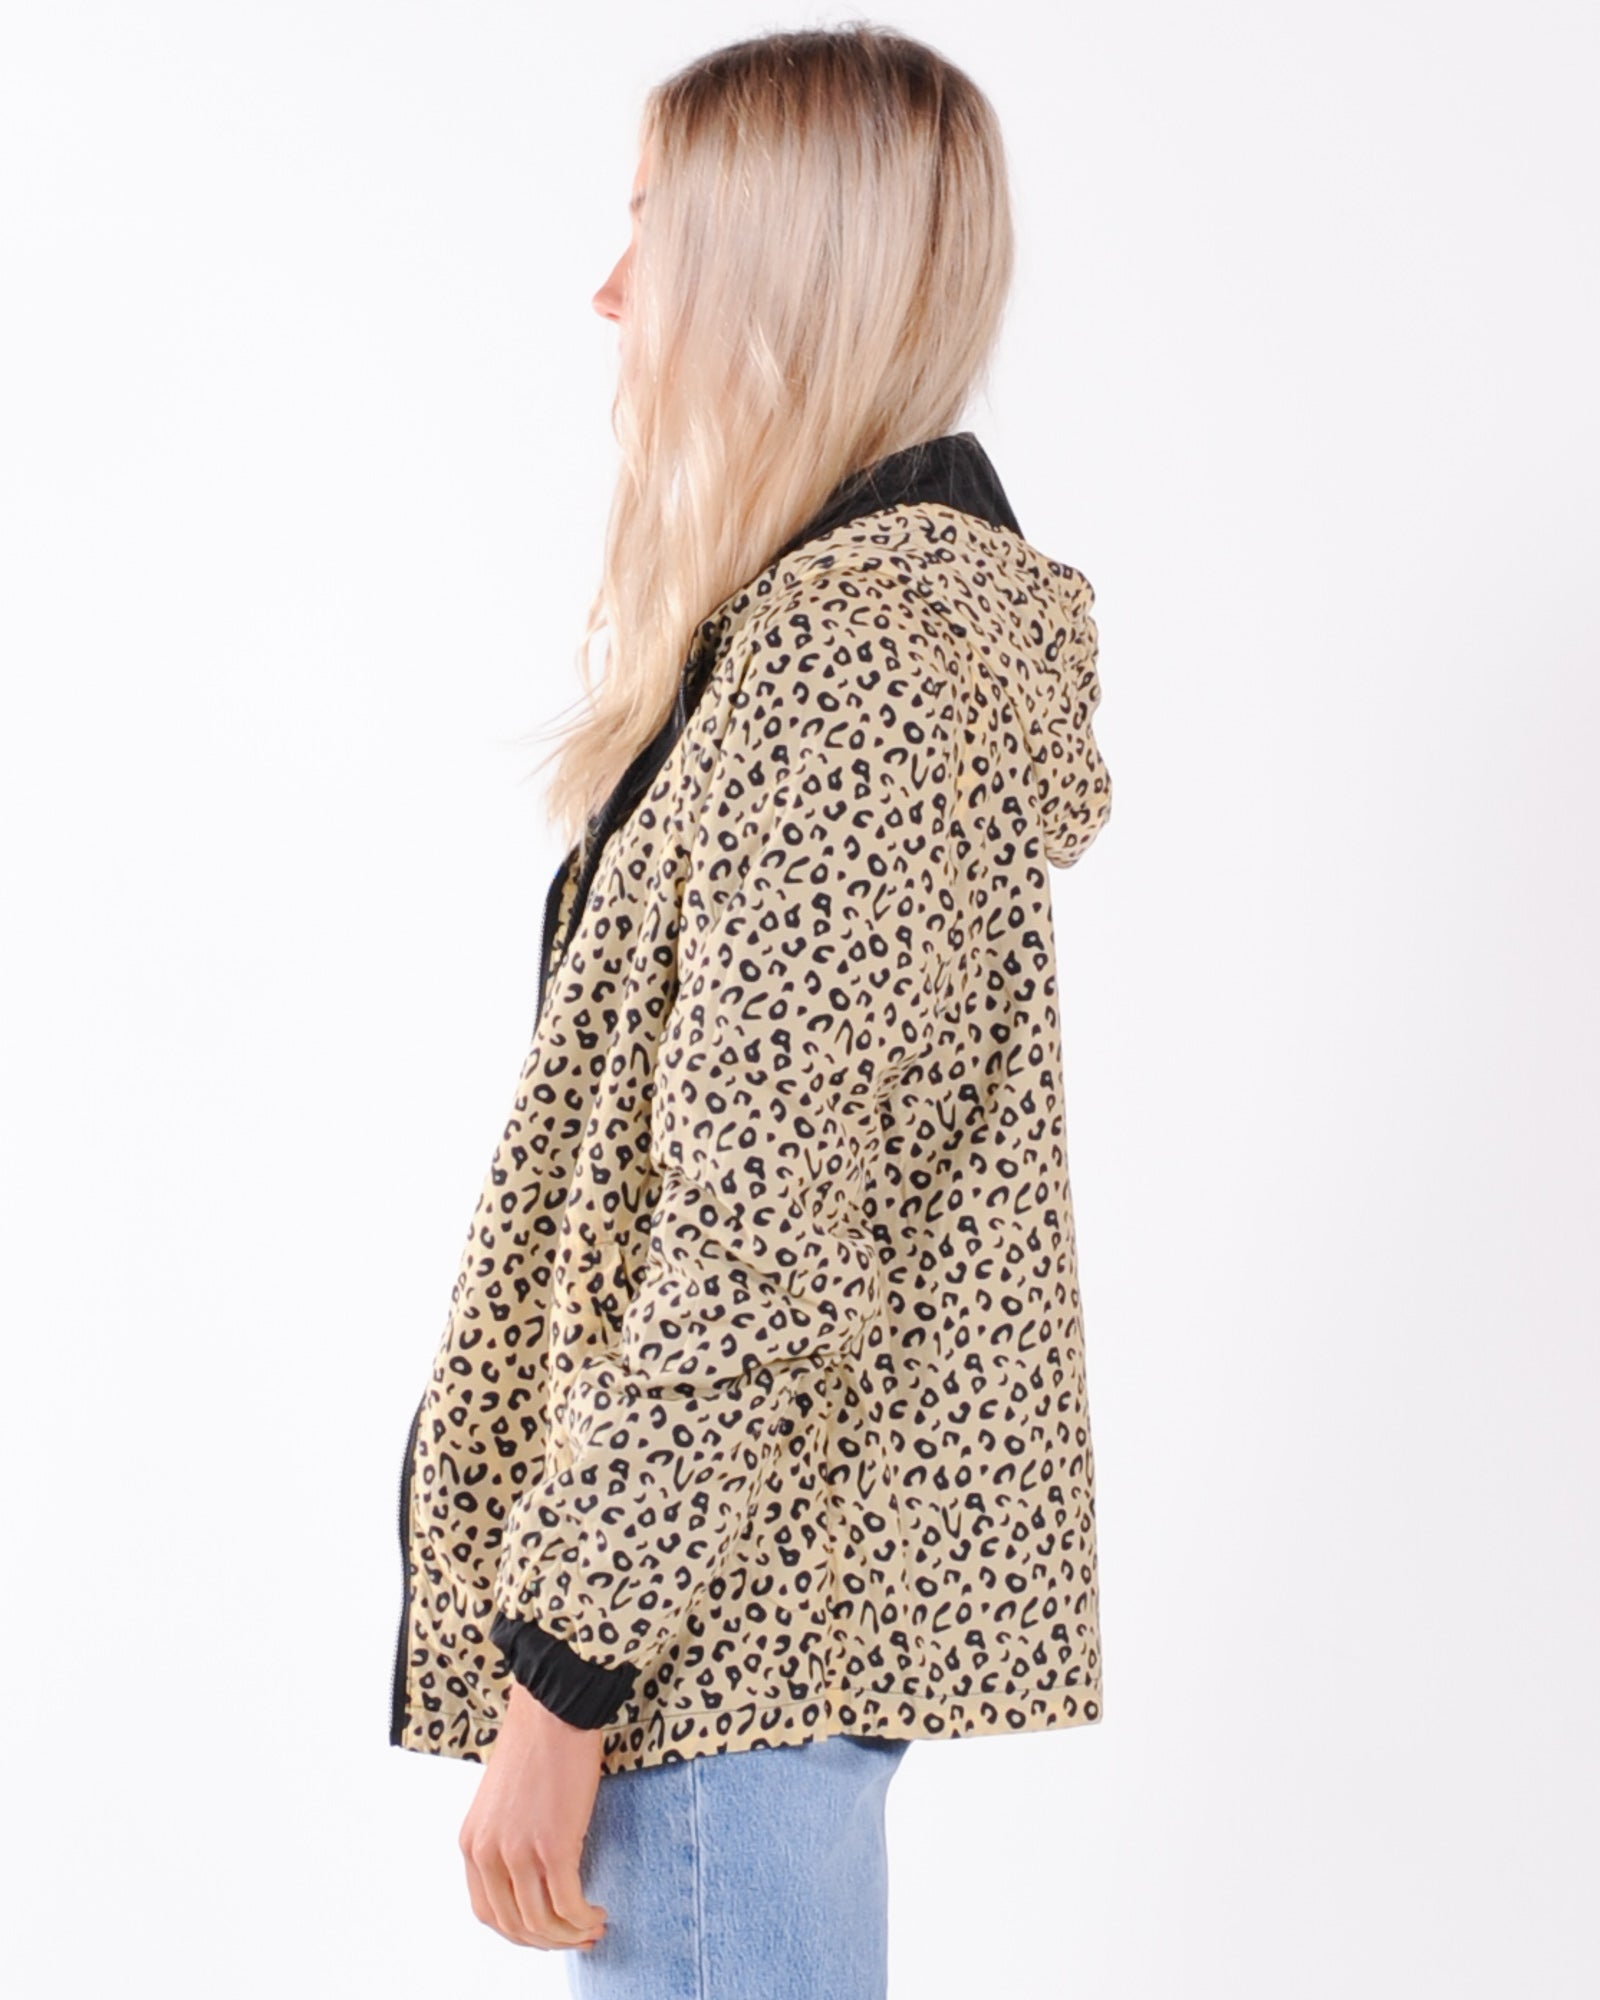 All About Eve Leopard Reversible Spray Jacket - Multi